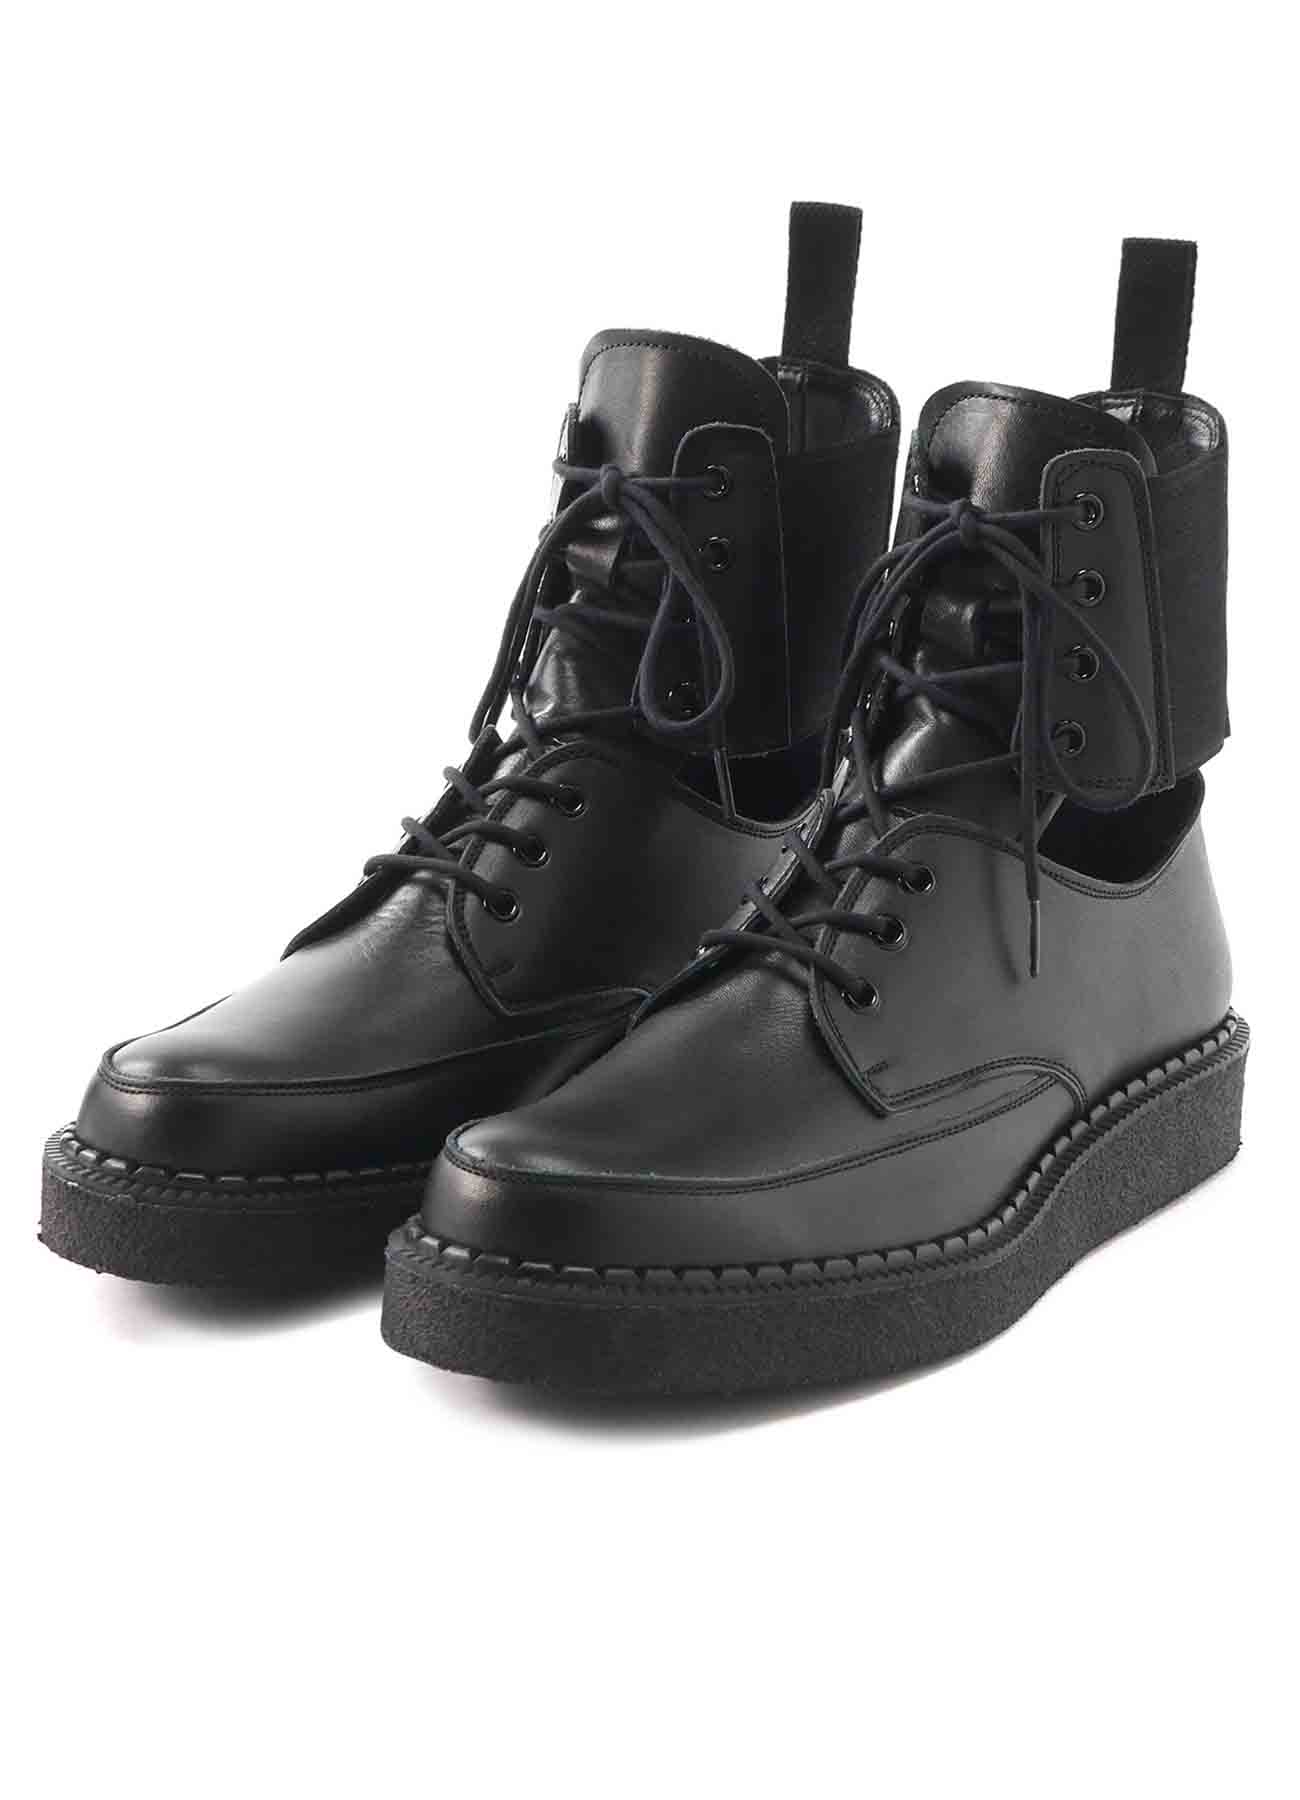 BLACK SMOOTH LEATHER SIDE GORE RUBBER SOLE BOOTS